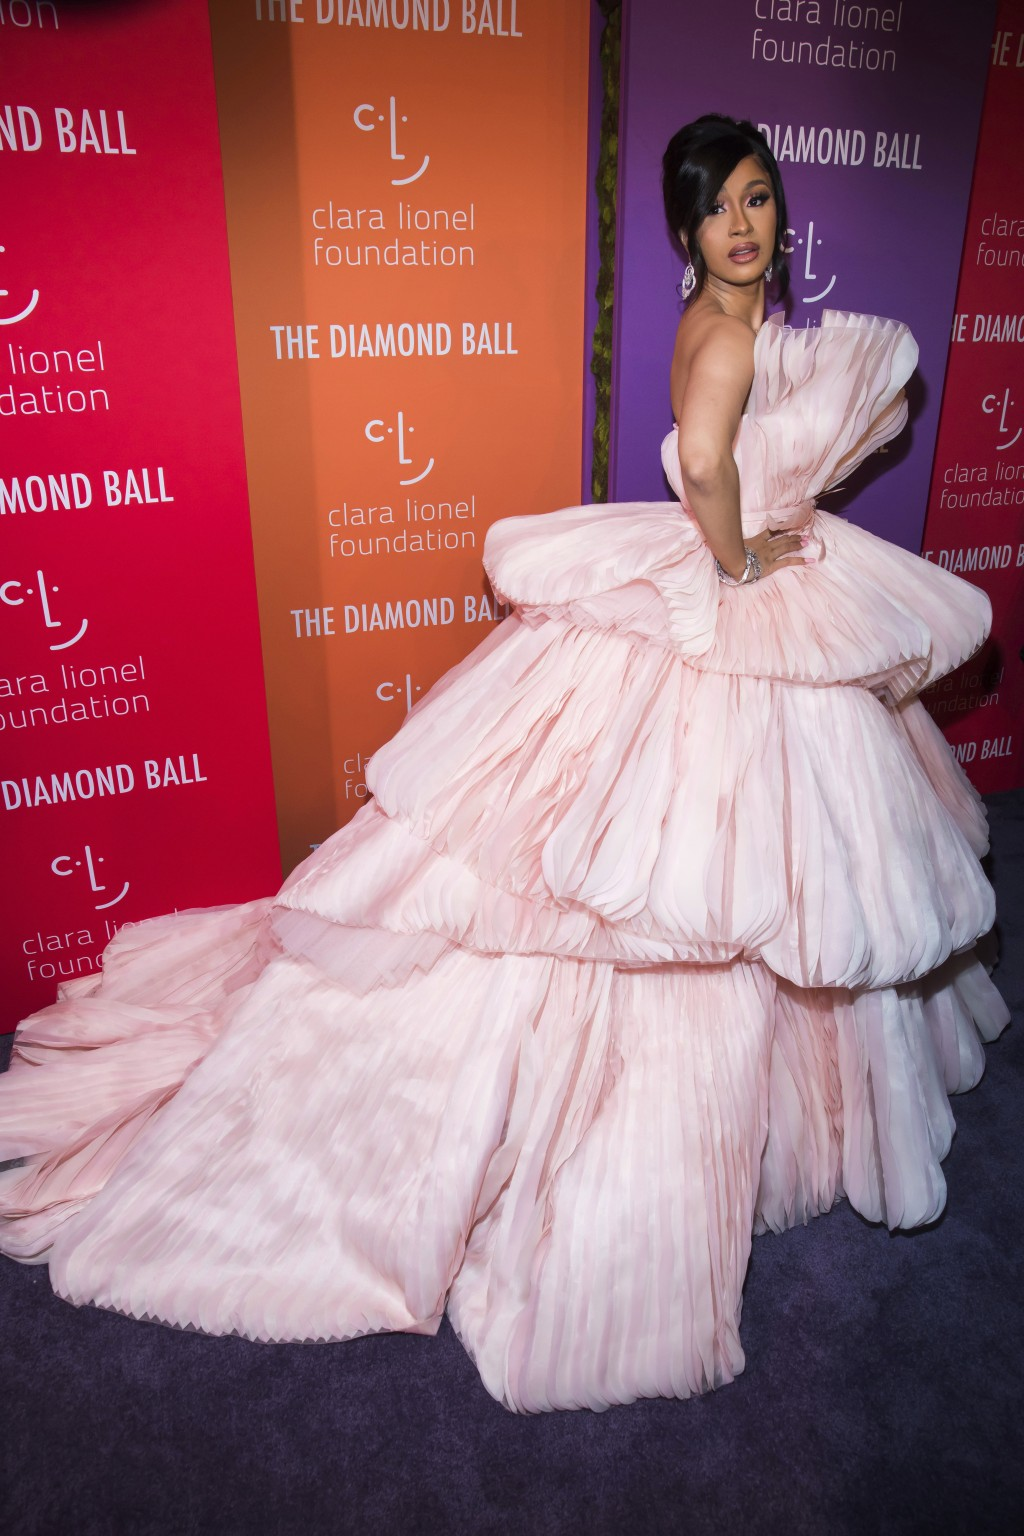 Cardi B attends the 5th annual Diamond Ball benefit gala at Cipriani Wall Street on Thursday, Sept. 12, 2019, in New York. (Photo by Charles Sykes/Inv